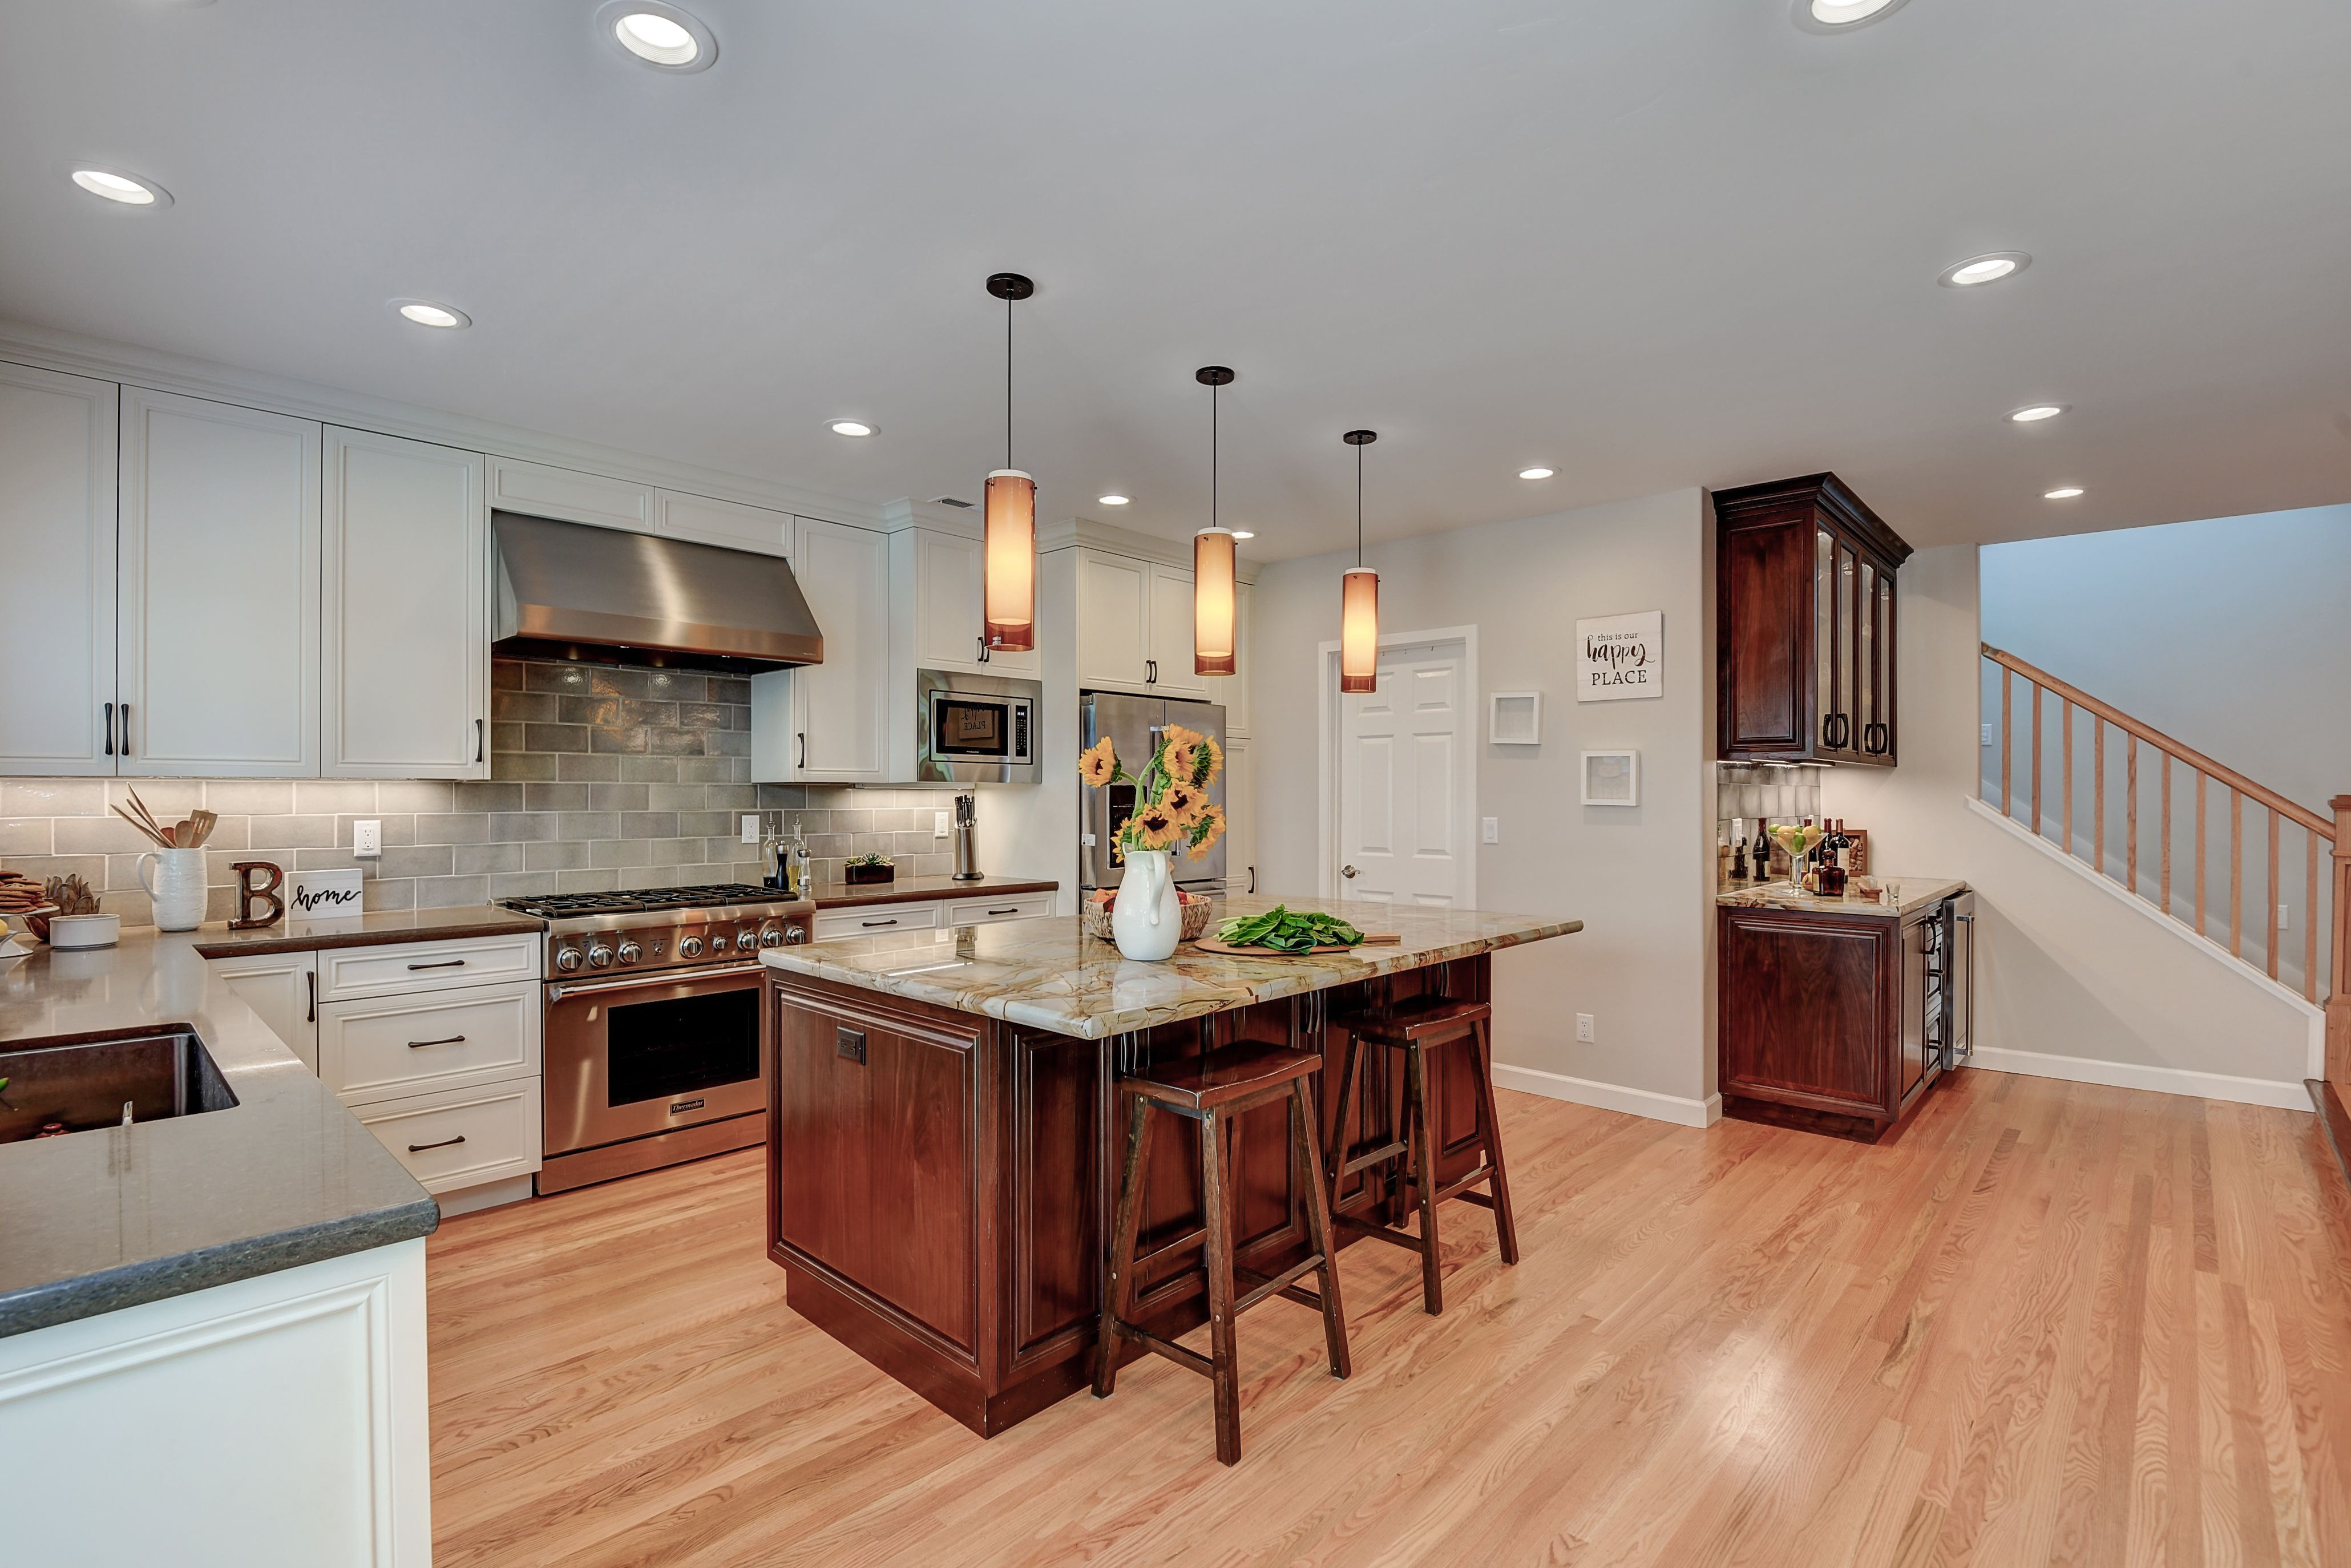 San Jose Electrical Contractor Remodel Your Home With The Help Of